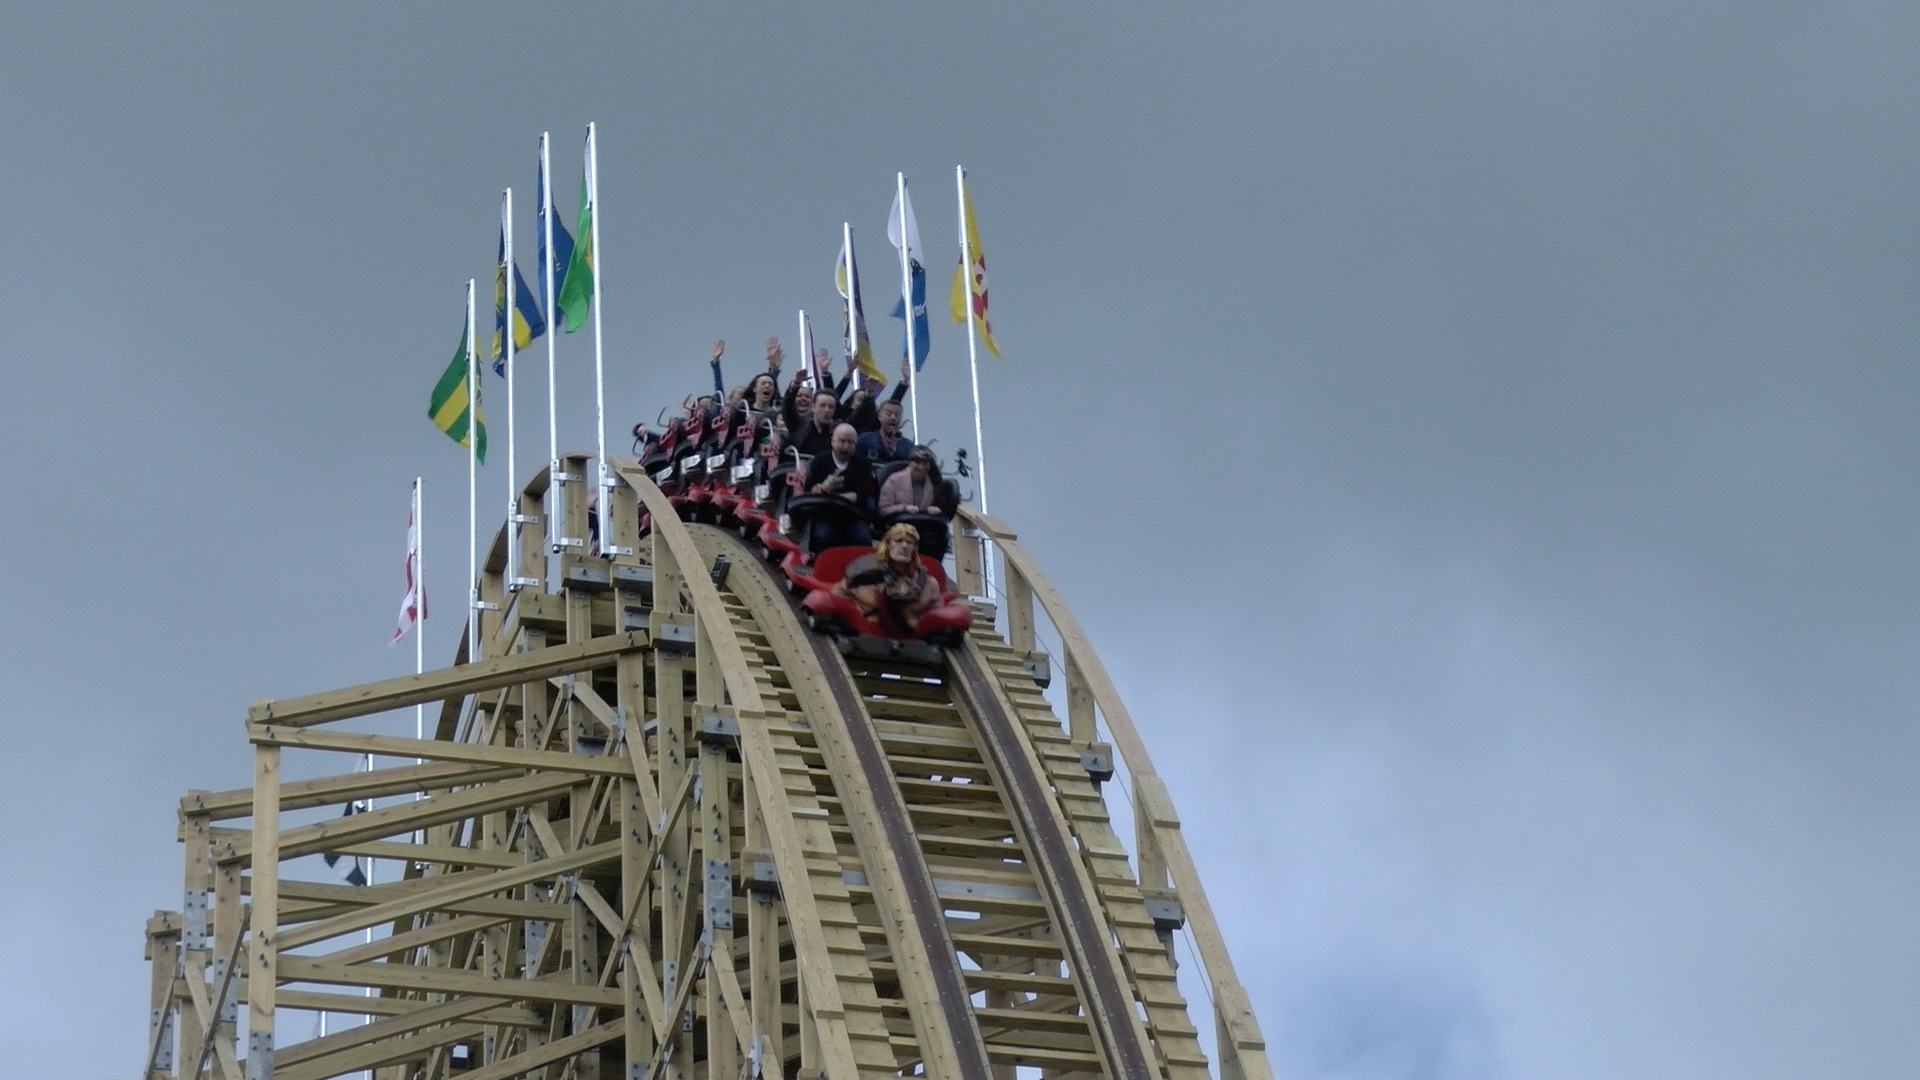 Europes Largest Wooden Rollercoaster Opens In Tayto Park